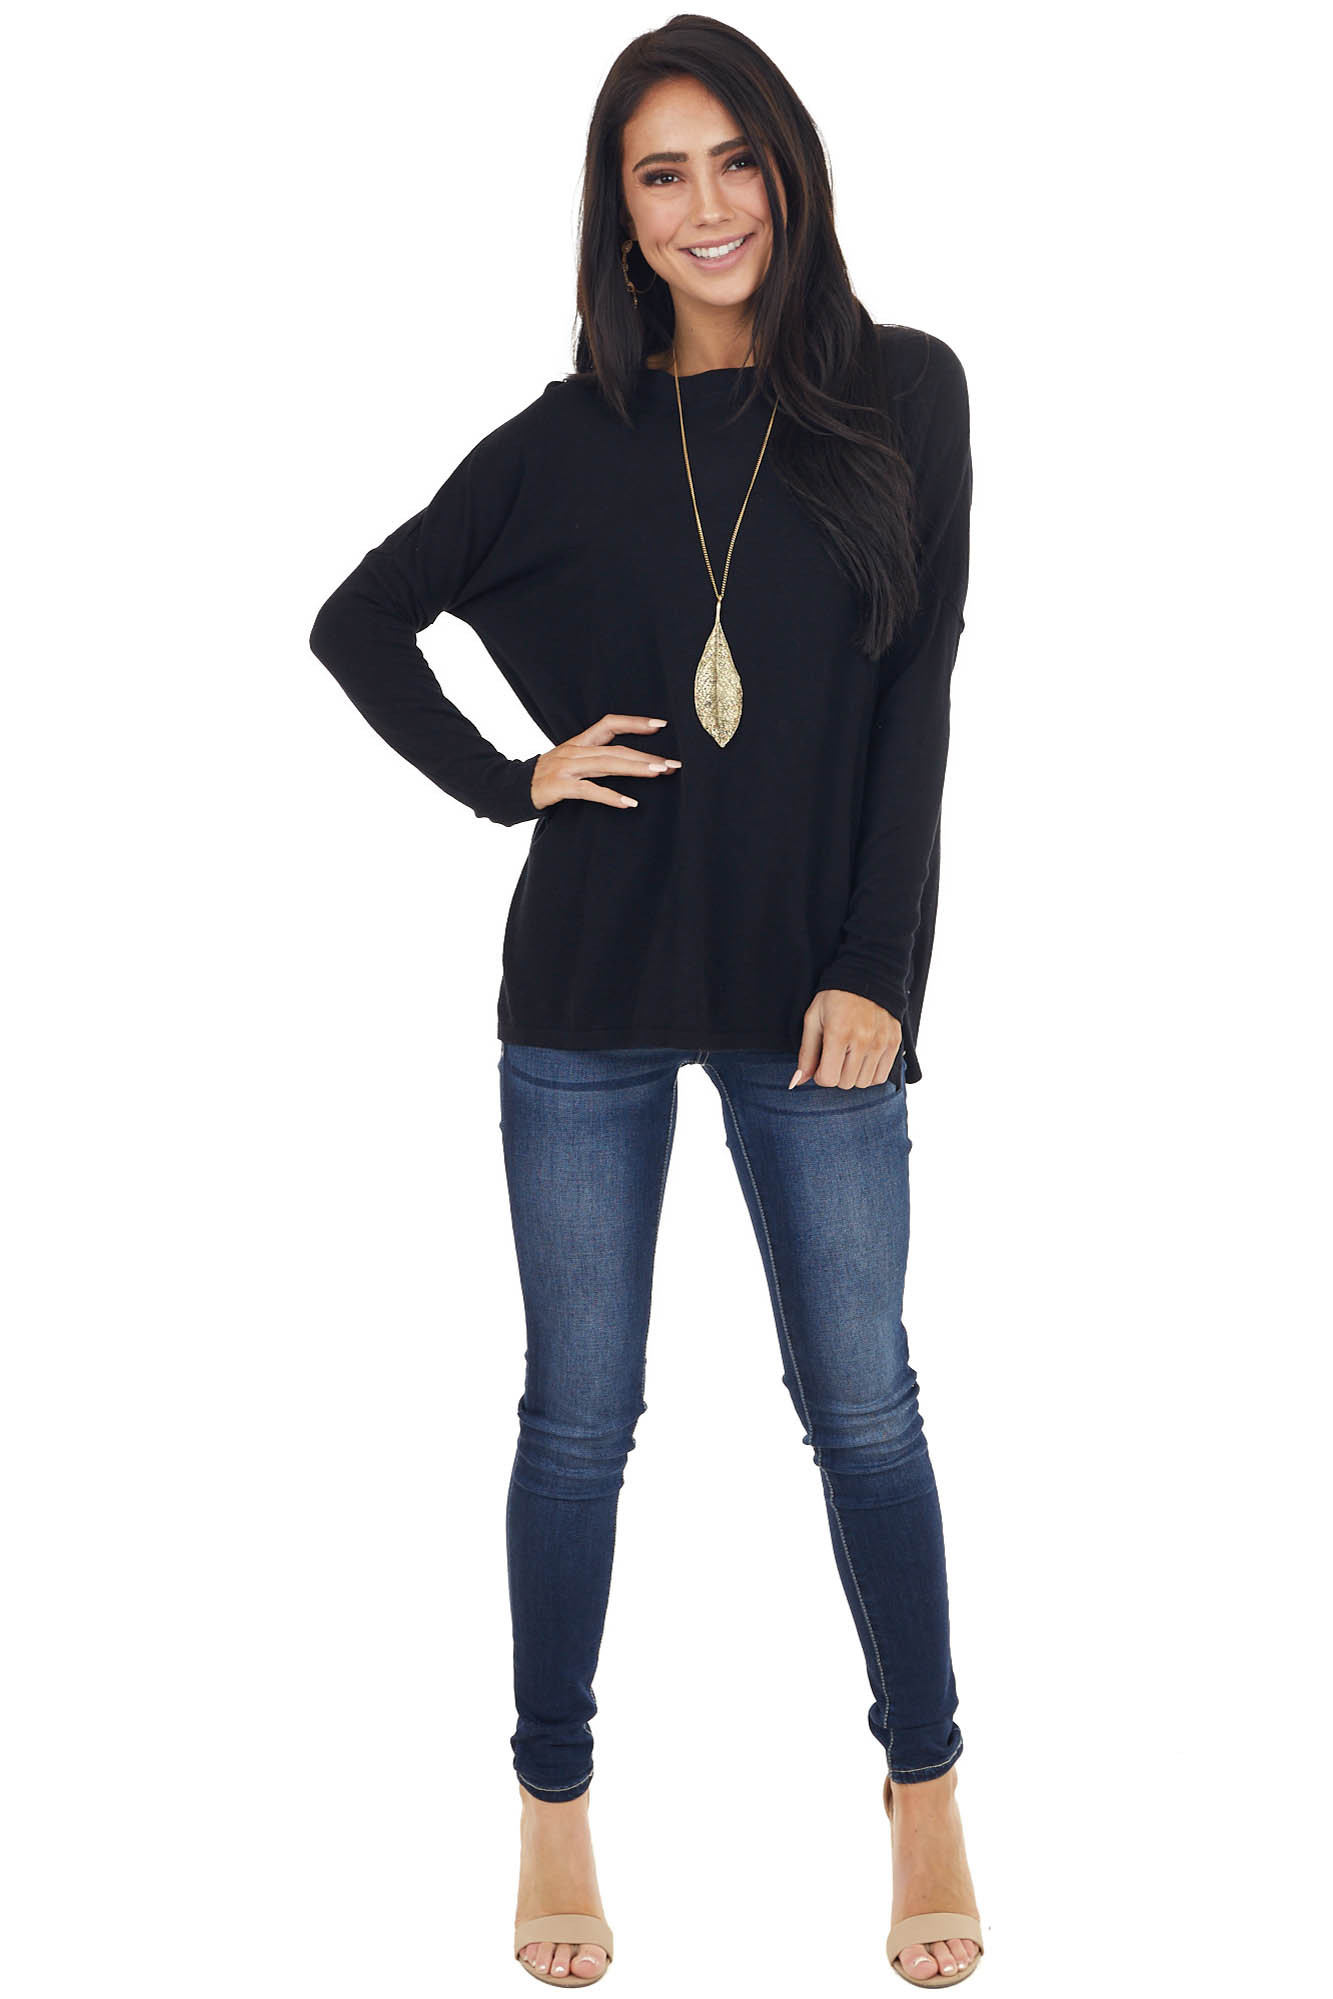 Black Round Neck Long Sleeve Knit Top with Side Slit Details